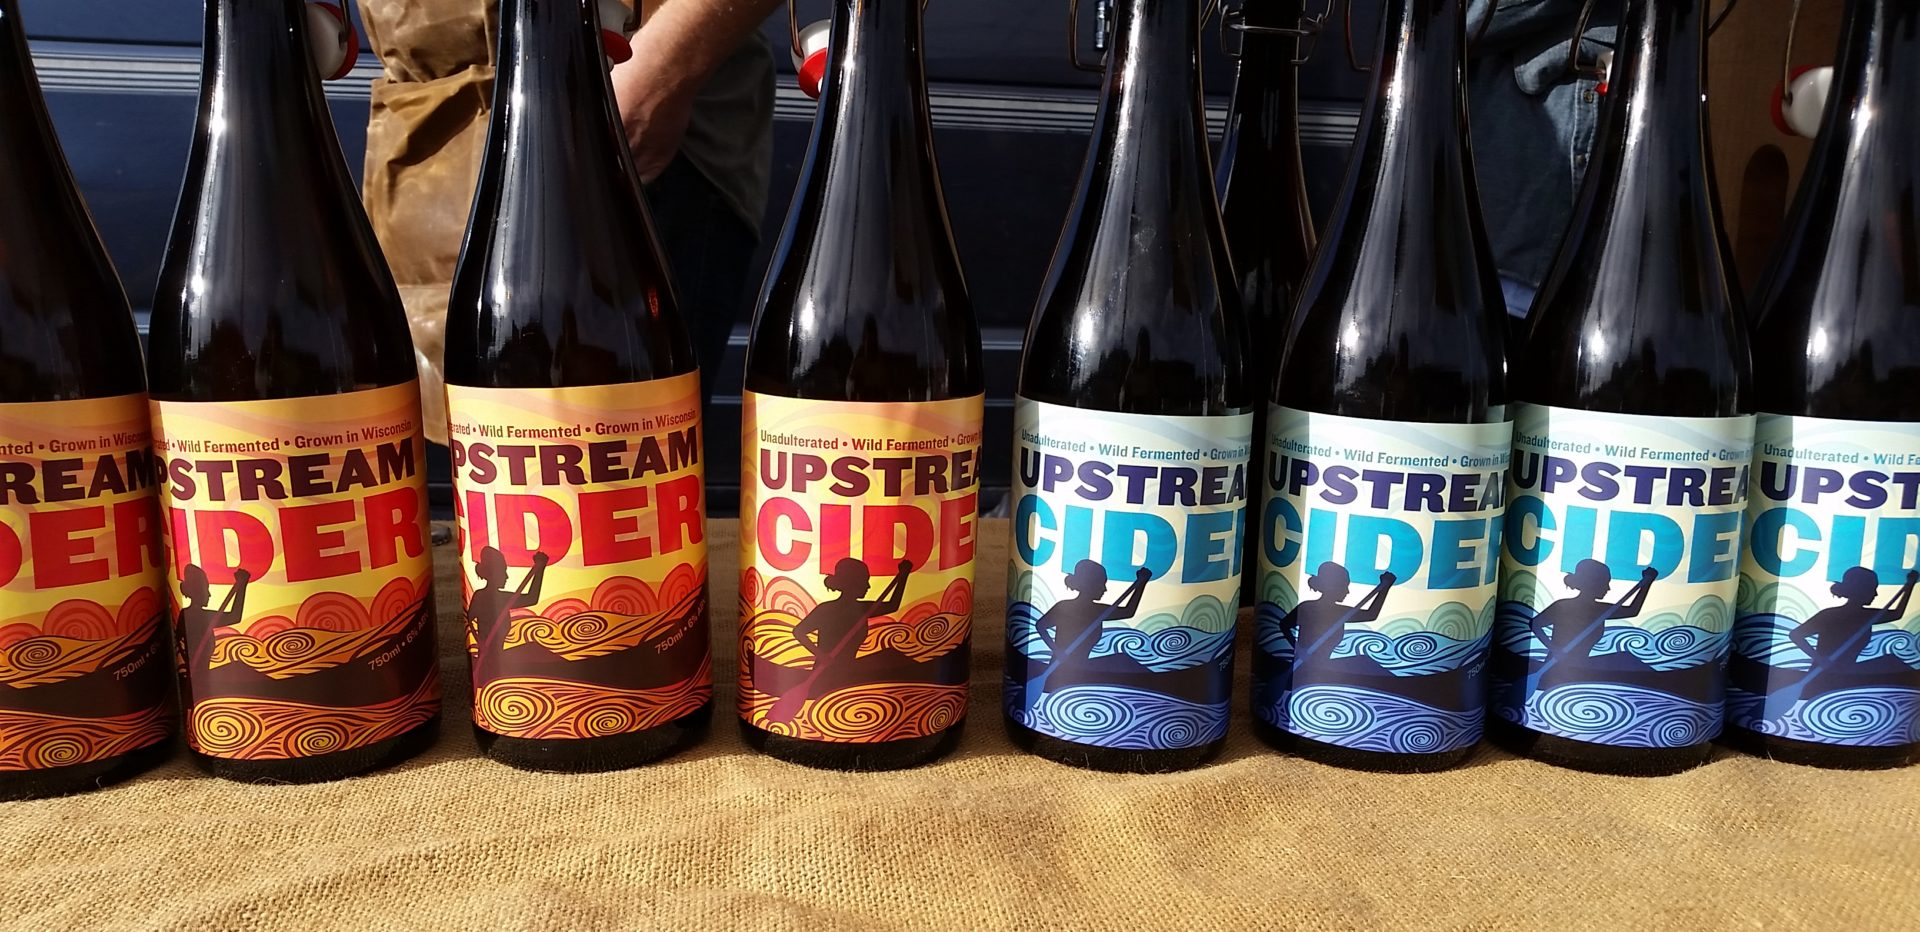 Upstream Cider